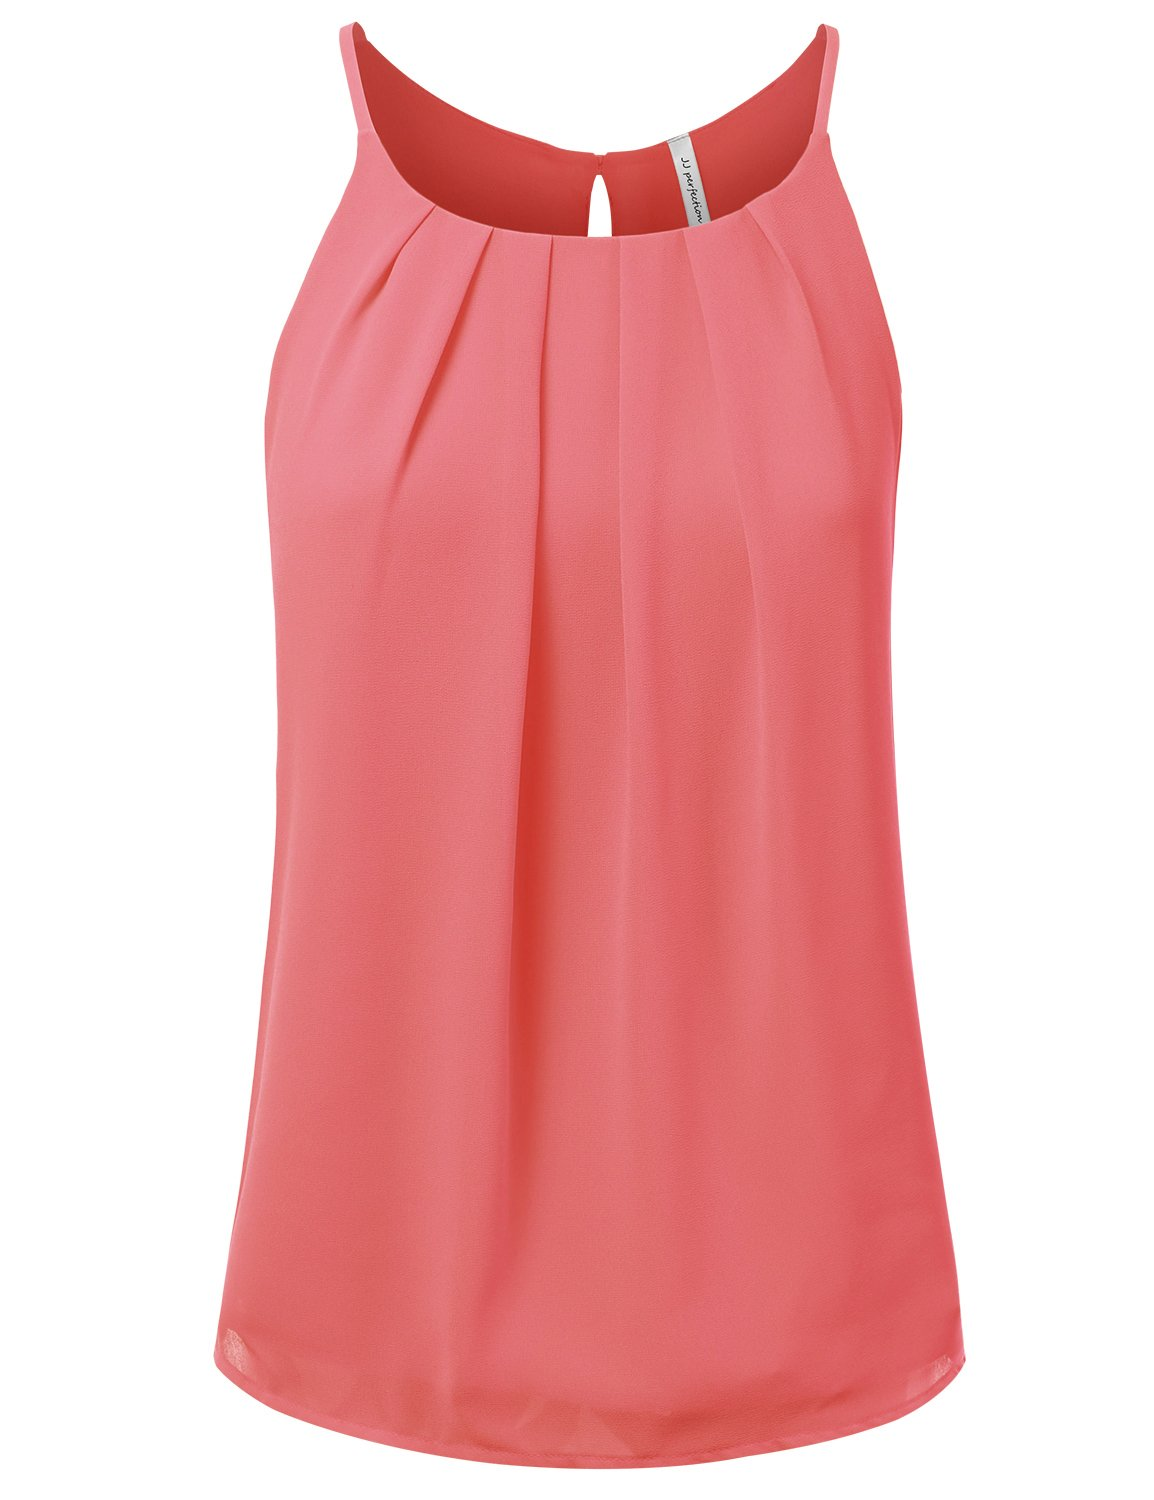 JJ Perfection Women's Round Neck Front Pleated Chiffon Cami Tank Top Coral M